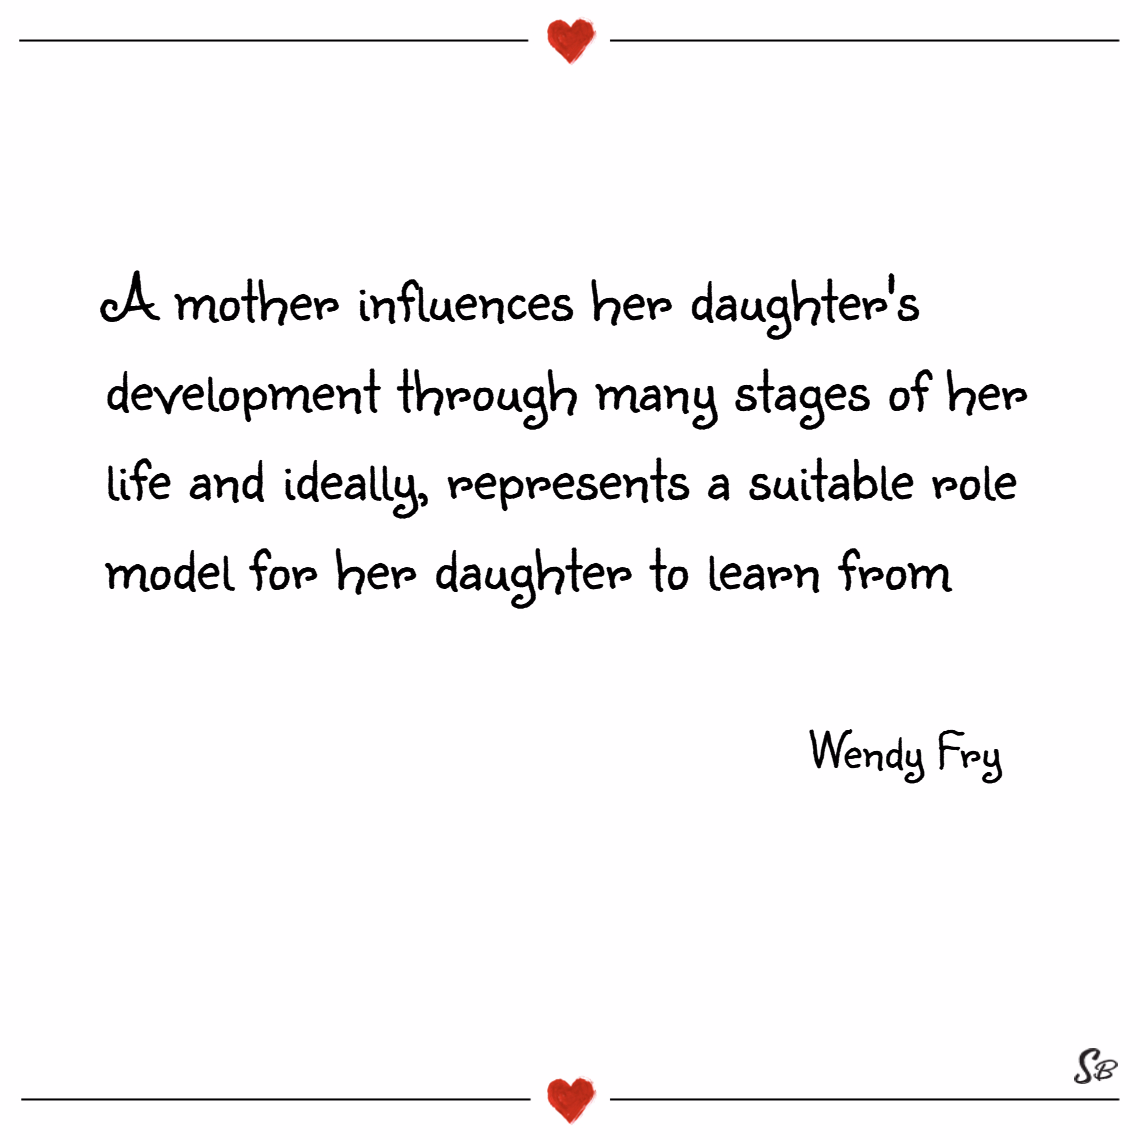 A mother influences her daughter's development through many stages of her life and ideally, represents a suitable role model for her daughter to learn from. – wendy fry